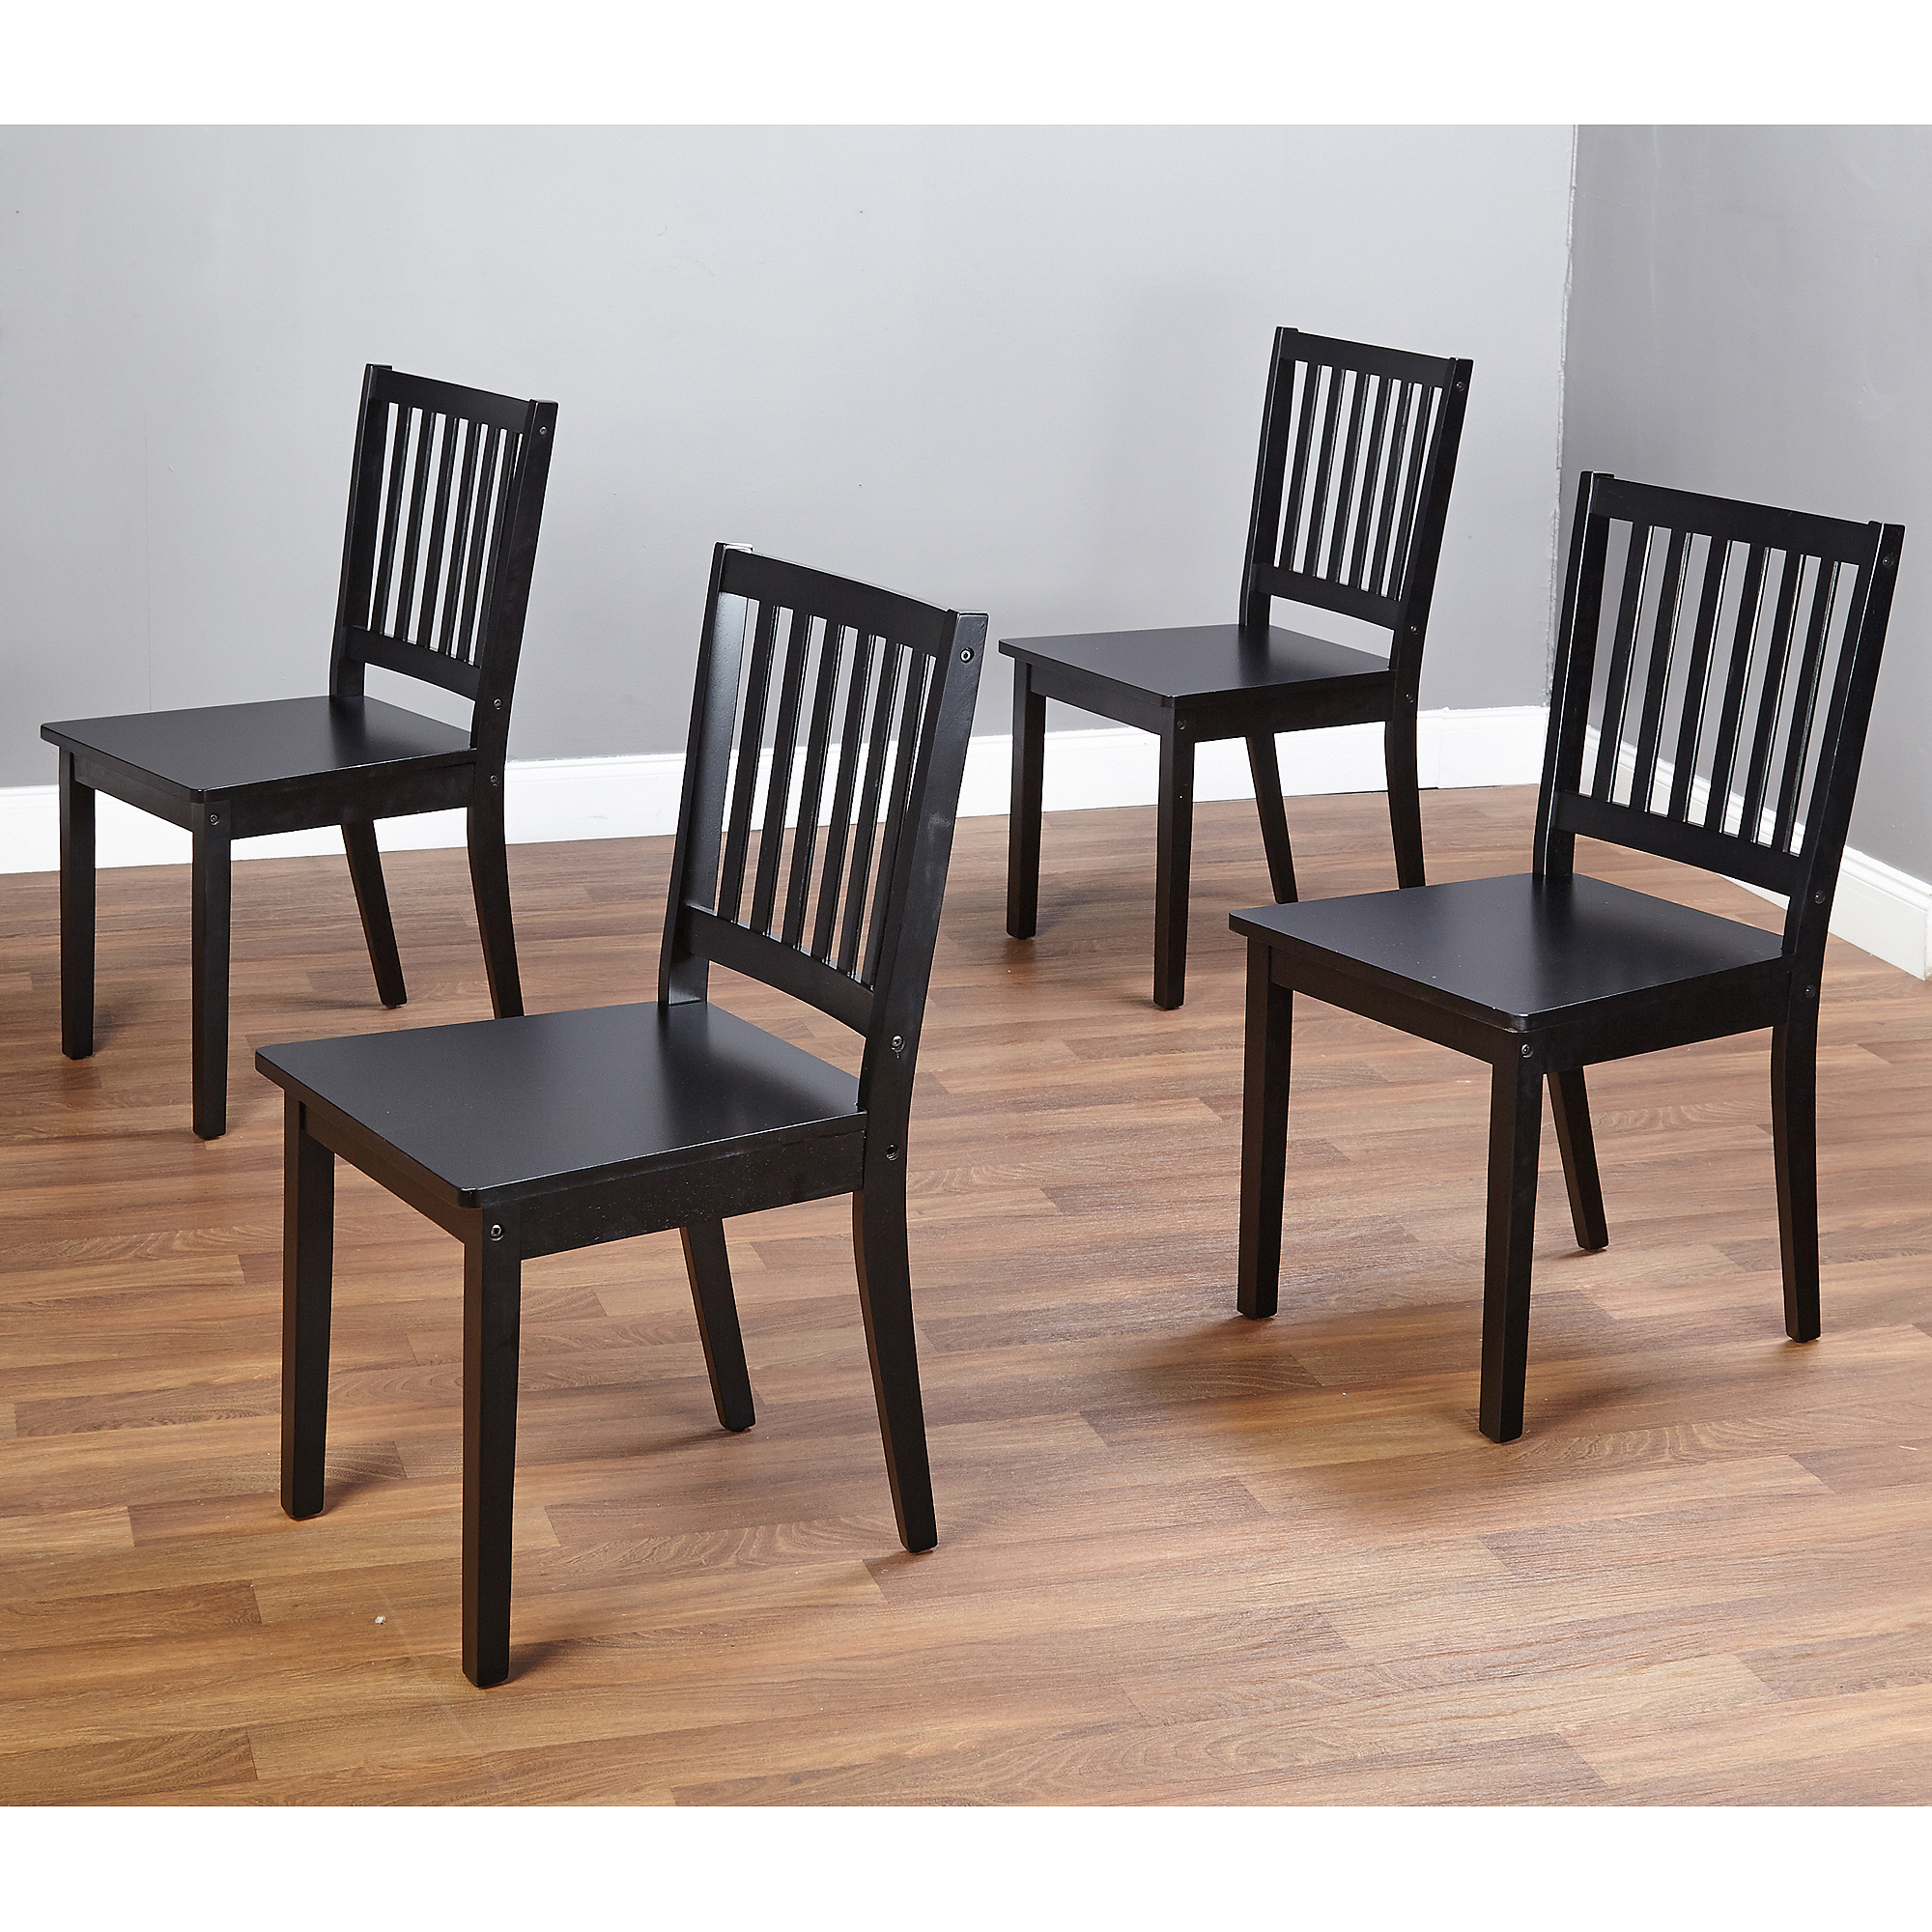 Black Dining Furniture: Shaker Dining Chairs, Set Of 4, Black 24319100190